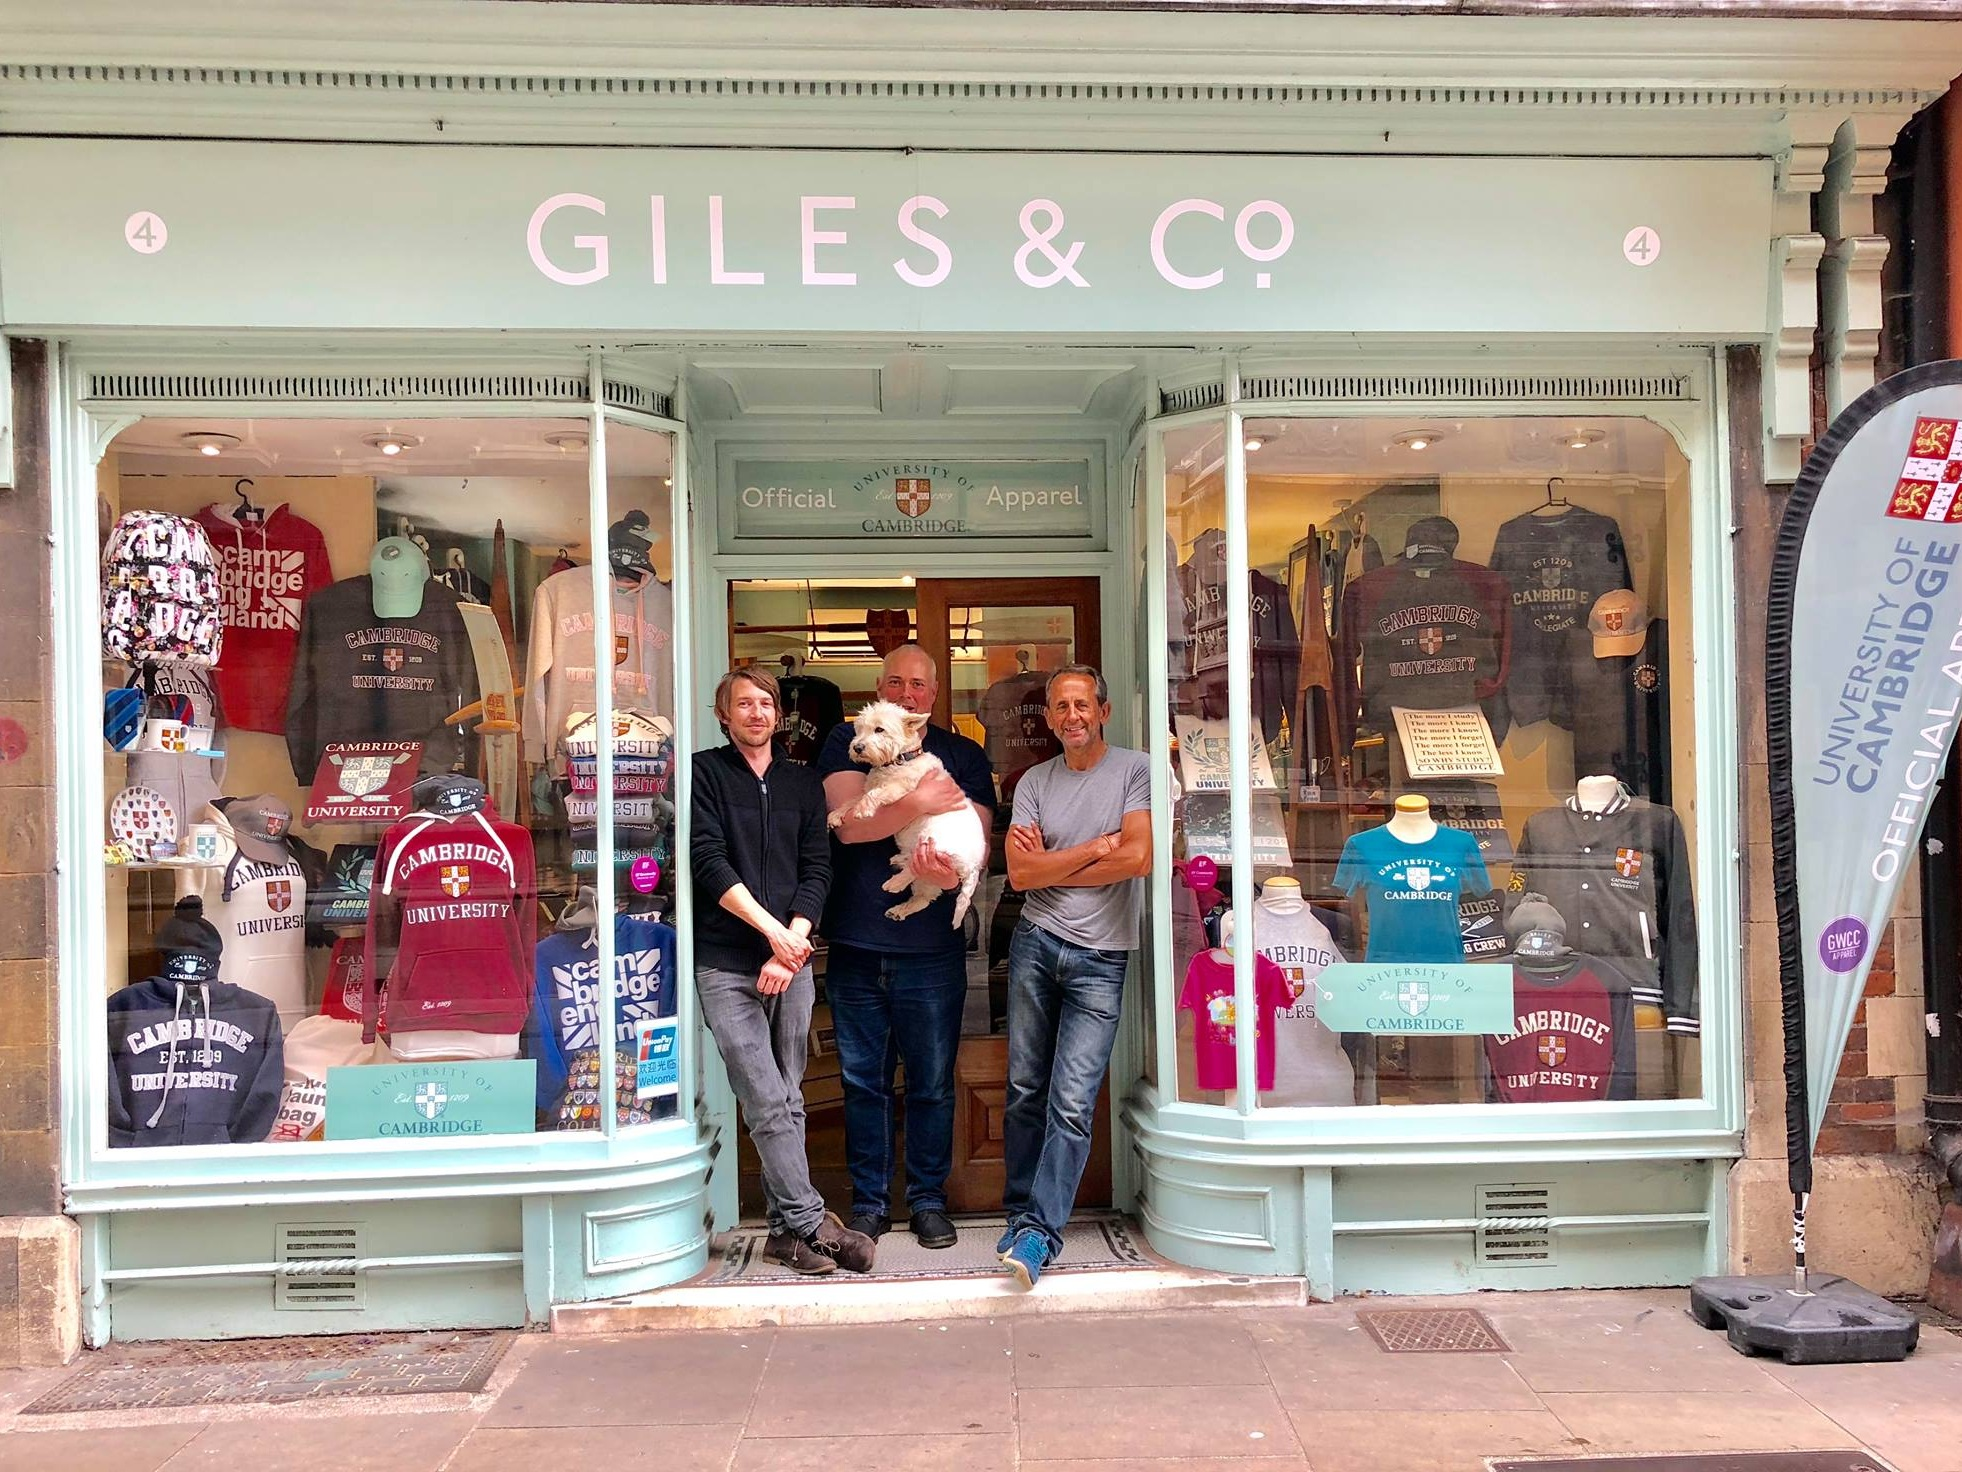 Giles & Co - Win a Cambridge goodie bag, including a sweatshirt and a selection of gifts